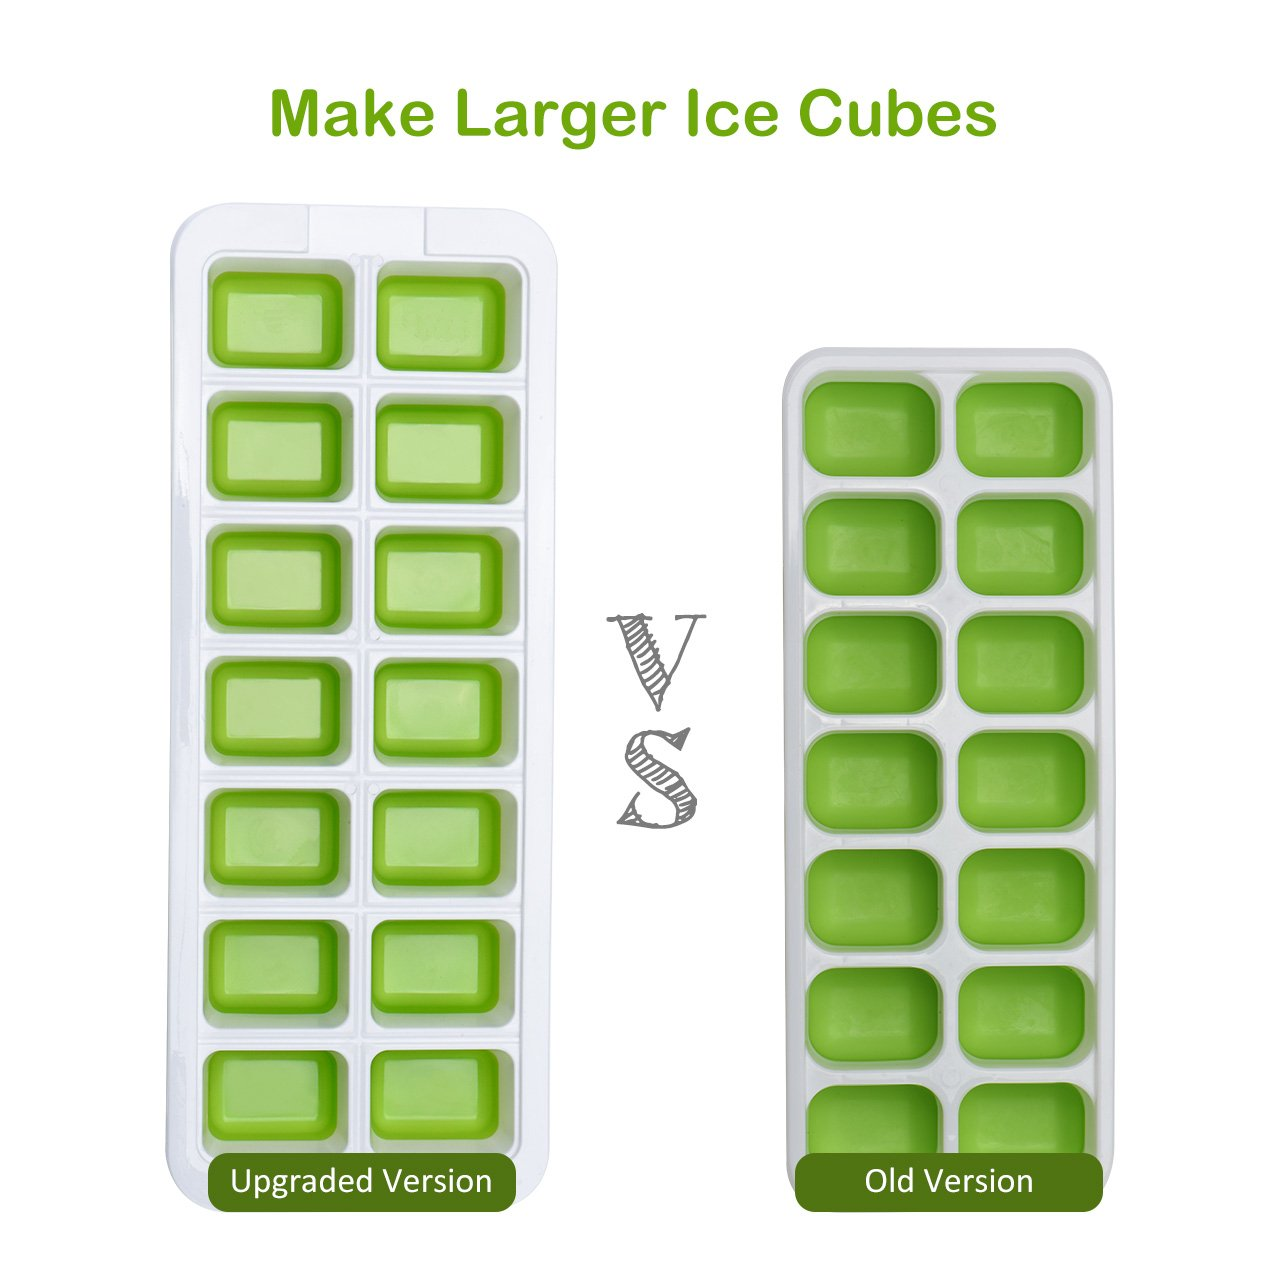 BPA Free LFGB Certified OMorc Ice Cube Trays 2 Pack Dishwasher Safe and Stackable Durable Easy-Release Silicone and Flexible 14-Ice Trays with Spill-Resistant Removable Lid